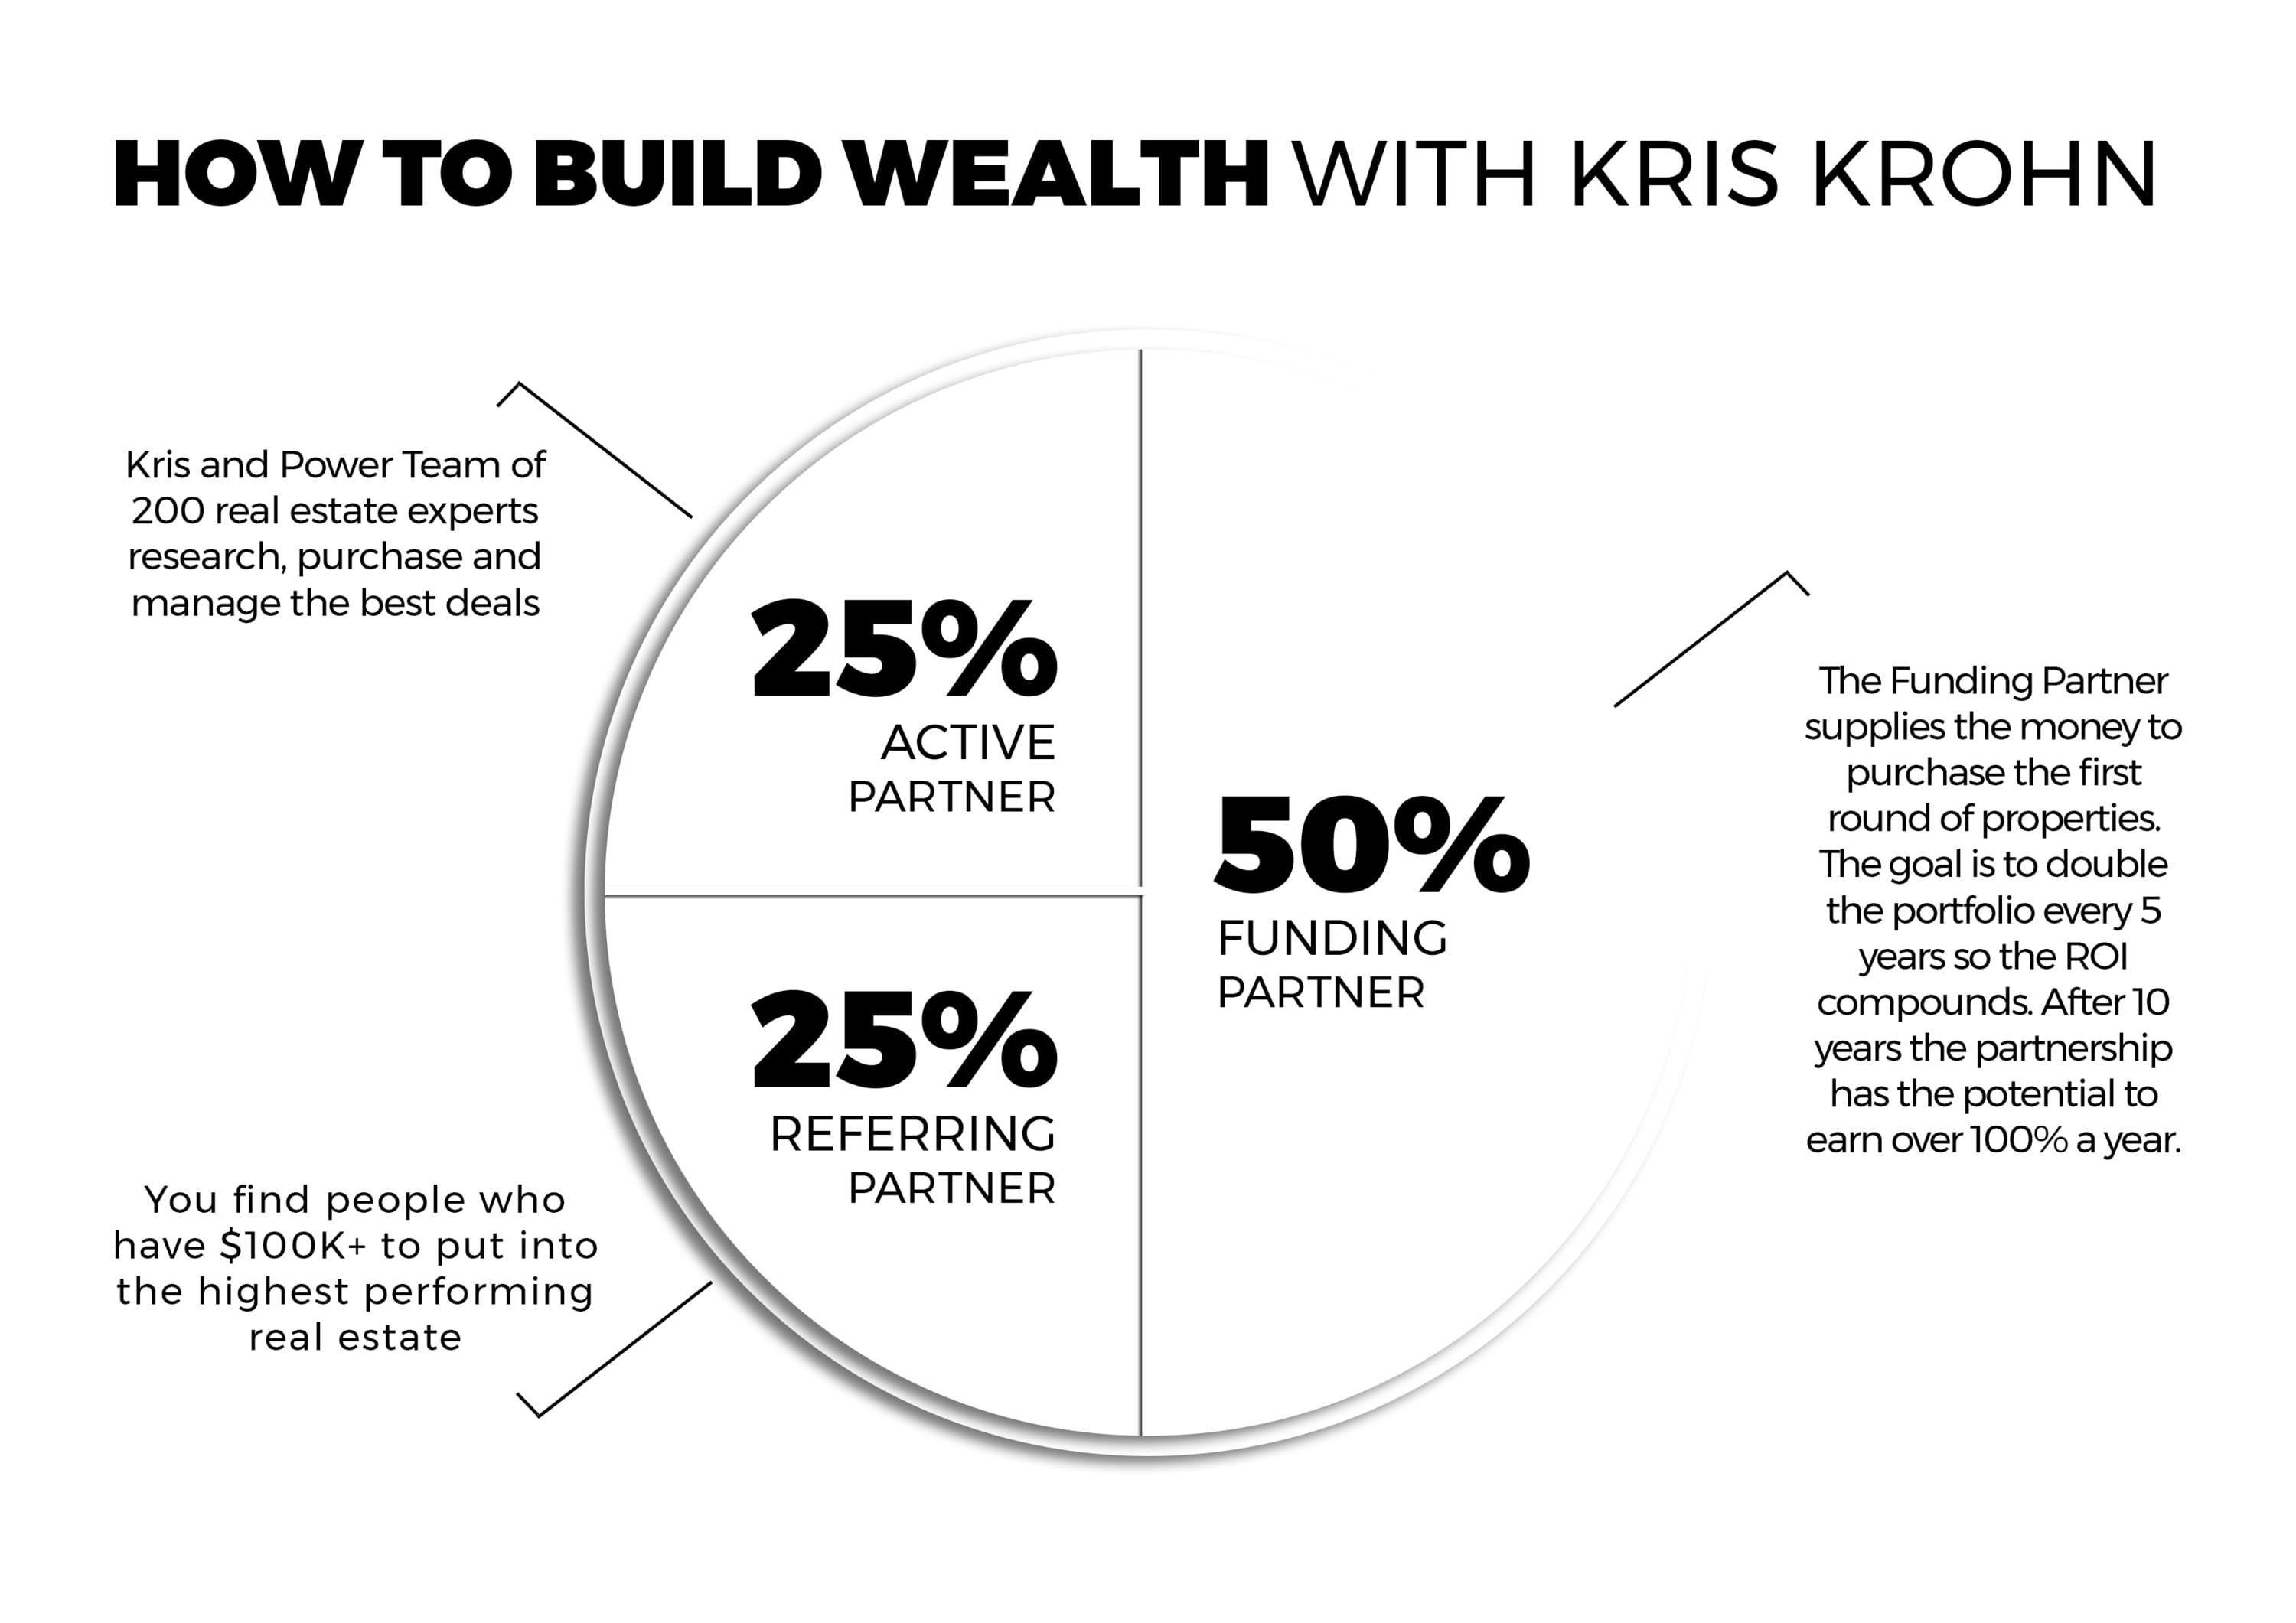 How to build Wealth with Kris Krohn